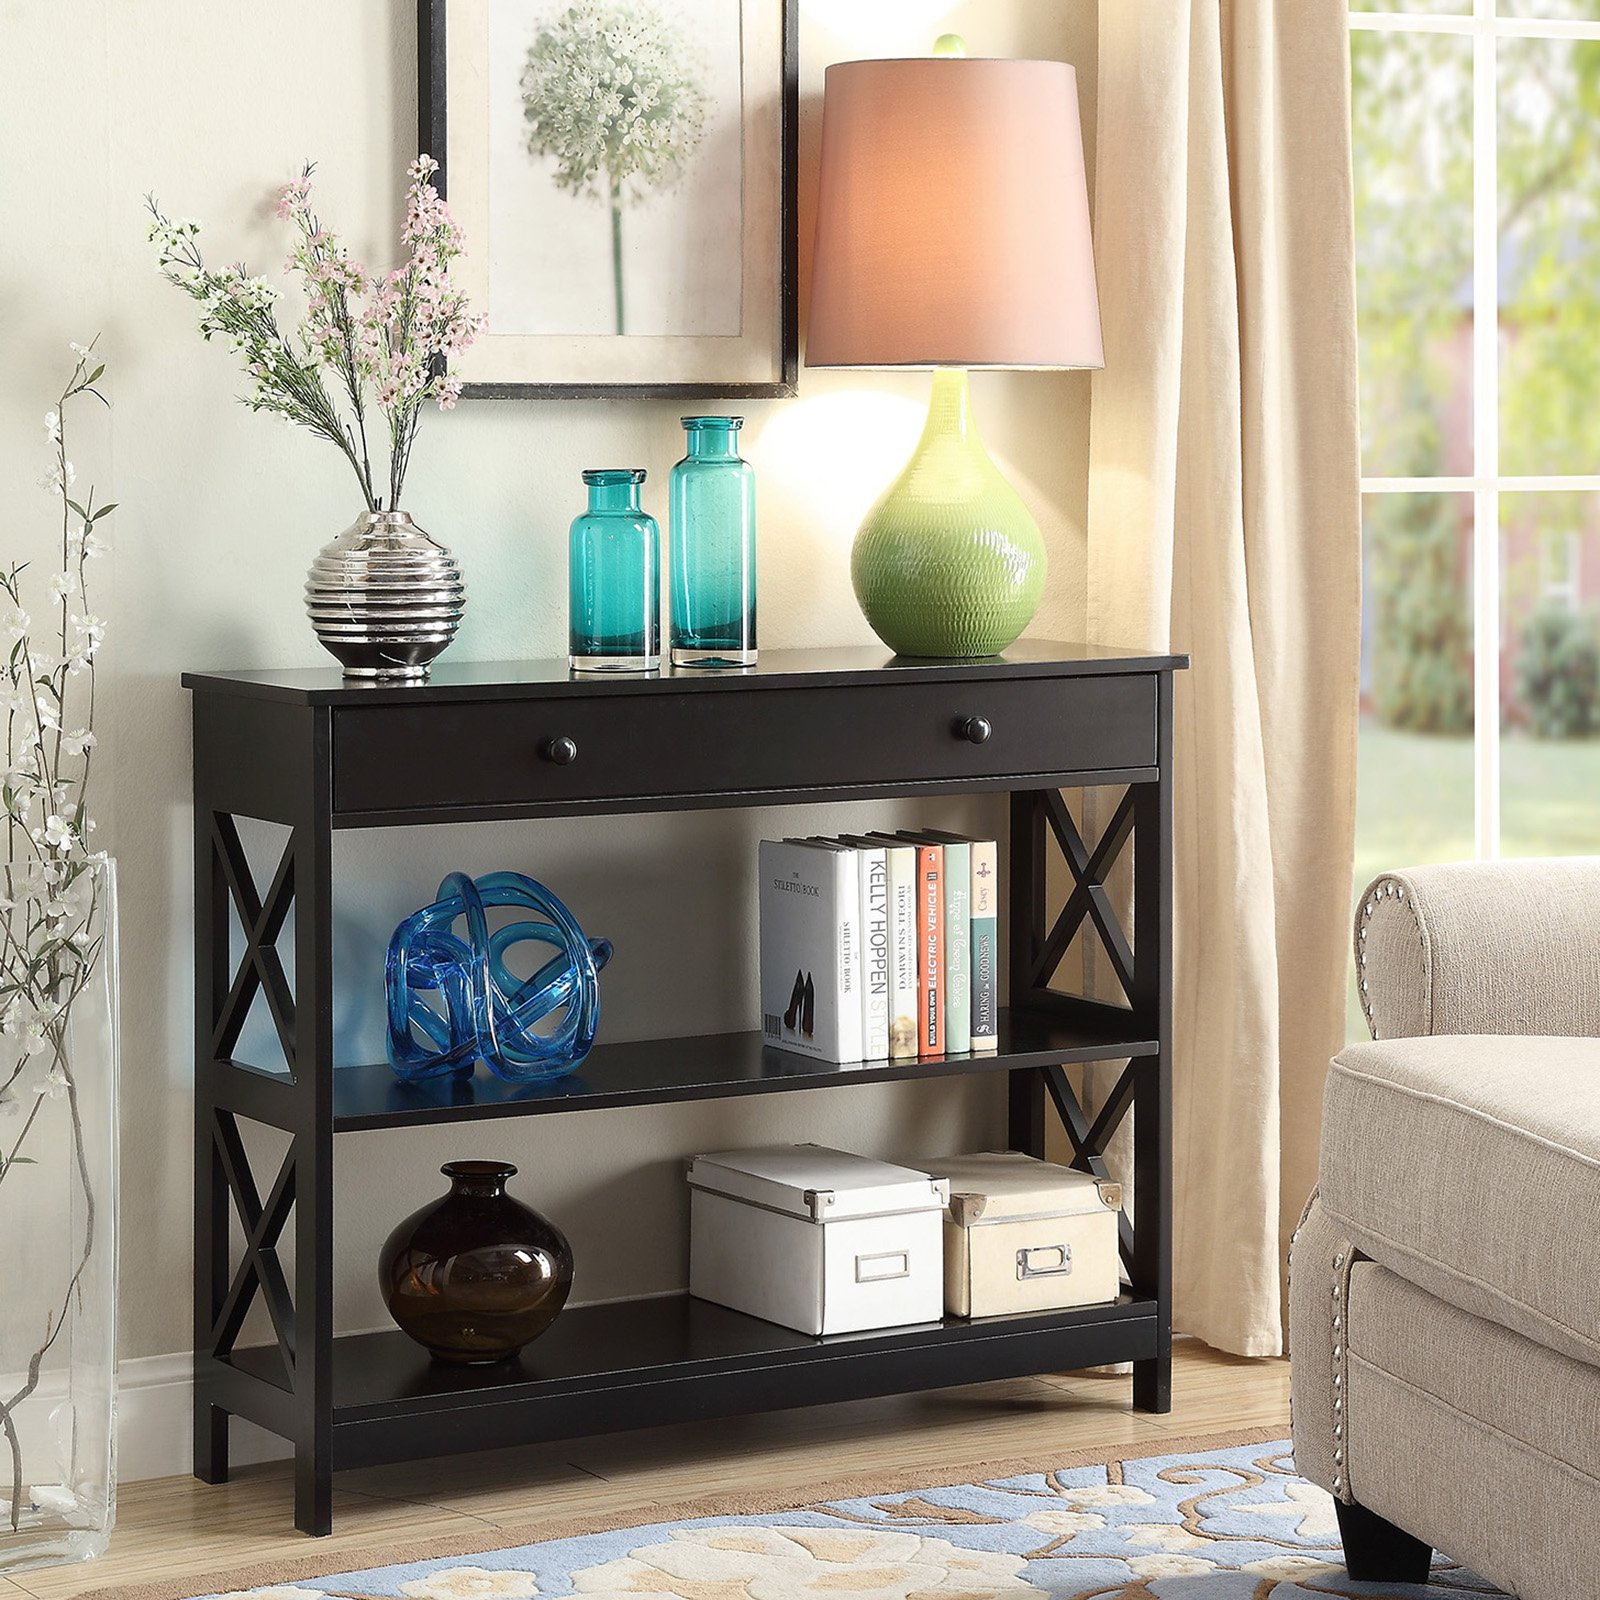 Details About Hallway Console Table Espresso Wood Accent Living Room Drawer Entryway Furniture